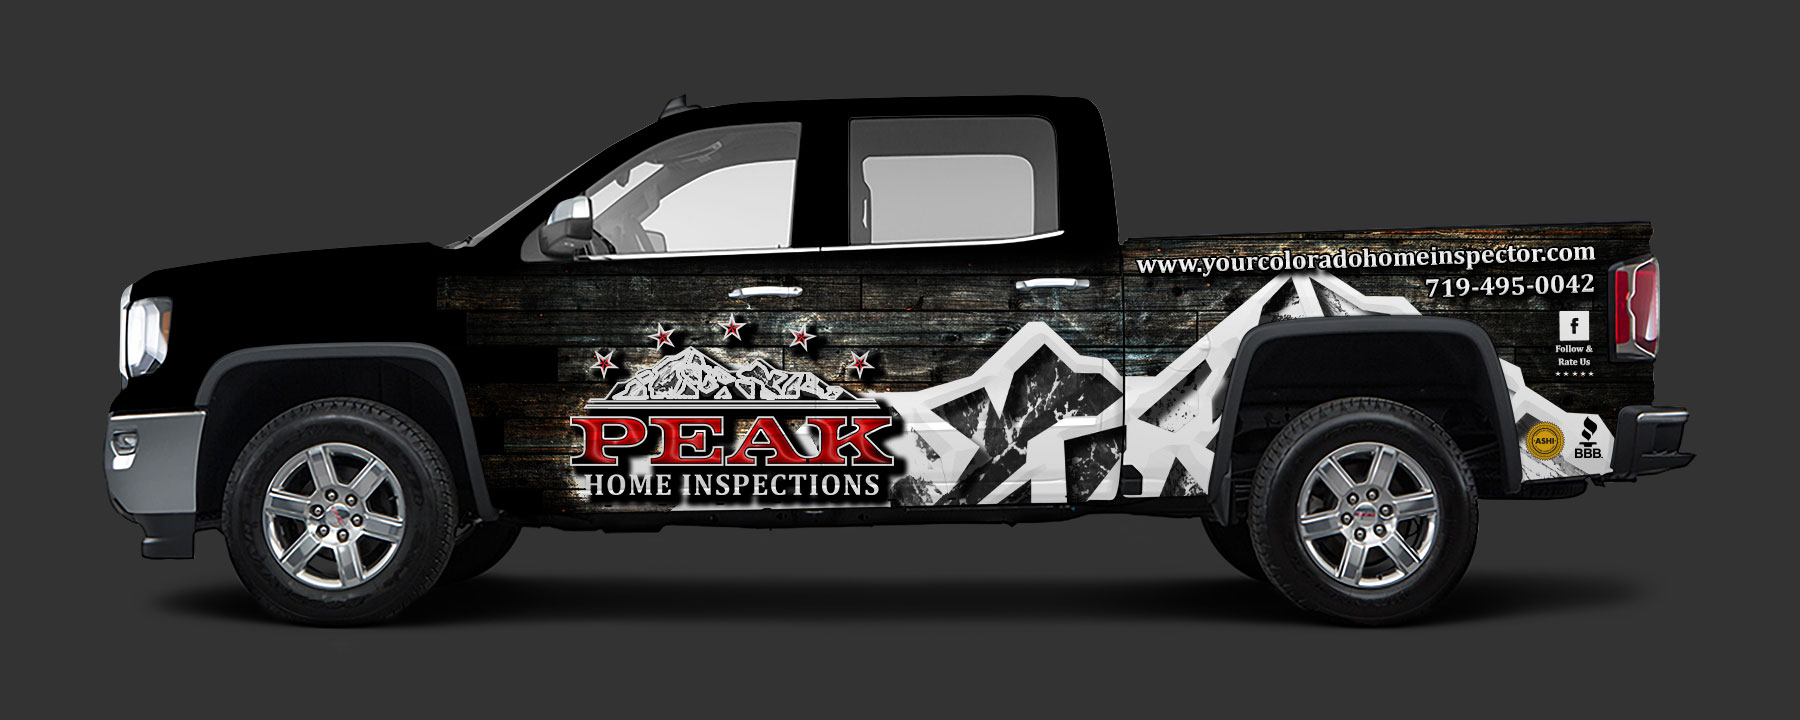 Peak Home Vehicle Wraps Pueblo CO